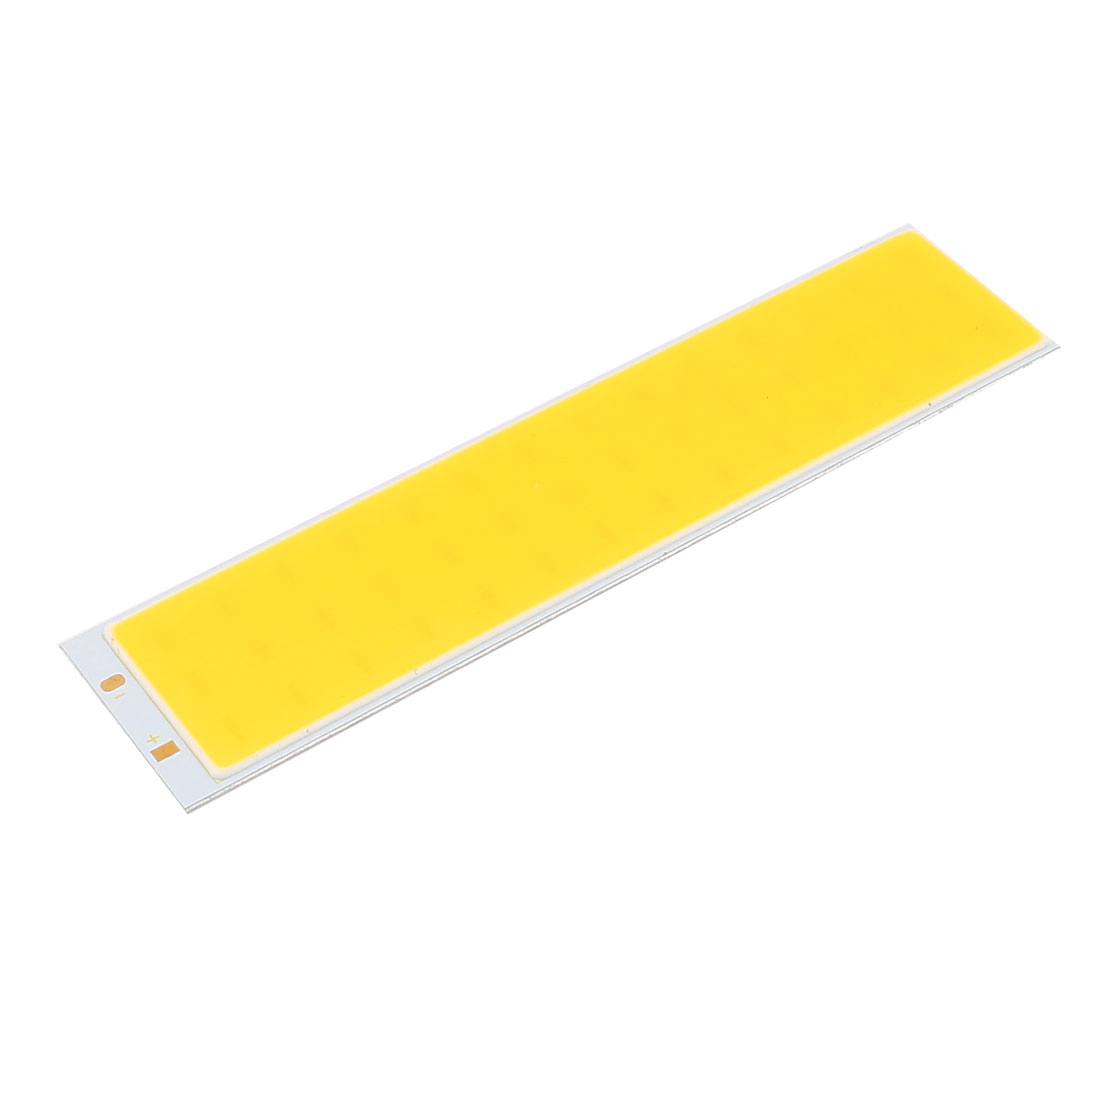 7W DC9-11V 600mA 80-90LM/W Warm White LED COB Light Lamp Beads Chip